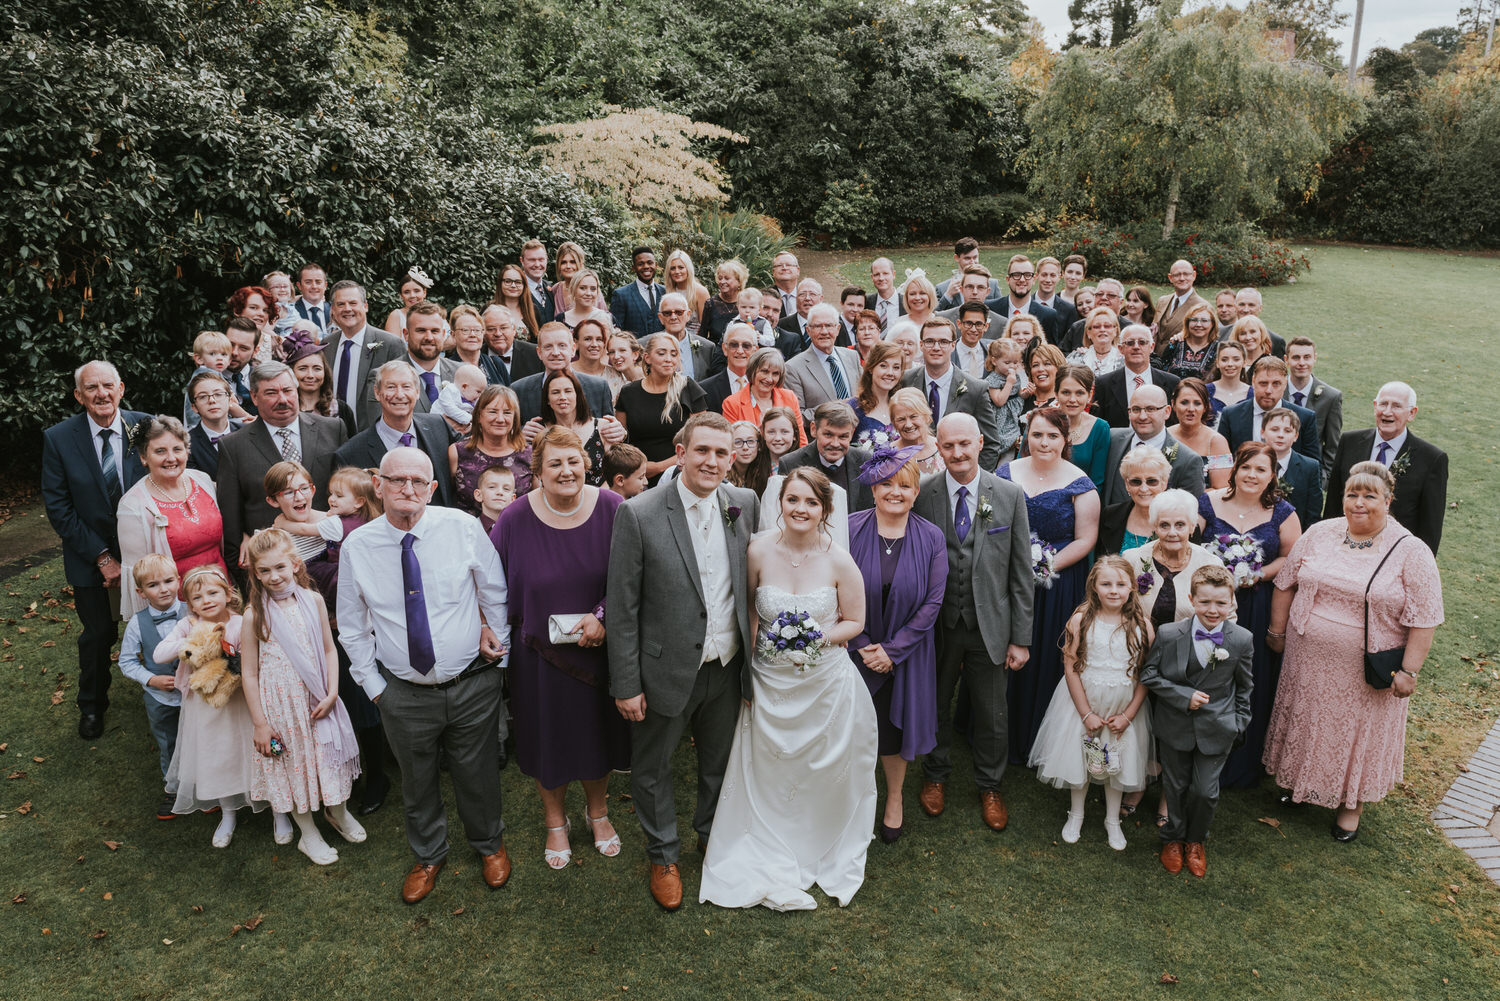 The Average Cost Of A U K Wedding In 2020 And Current Wedding Trends